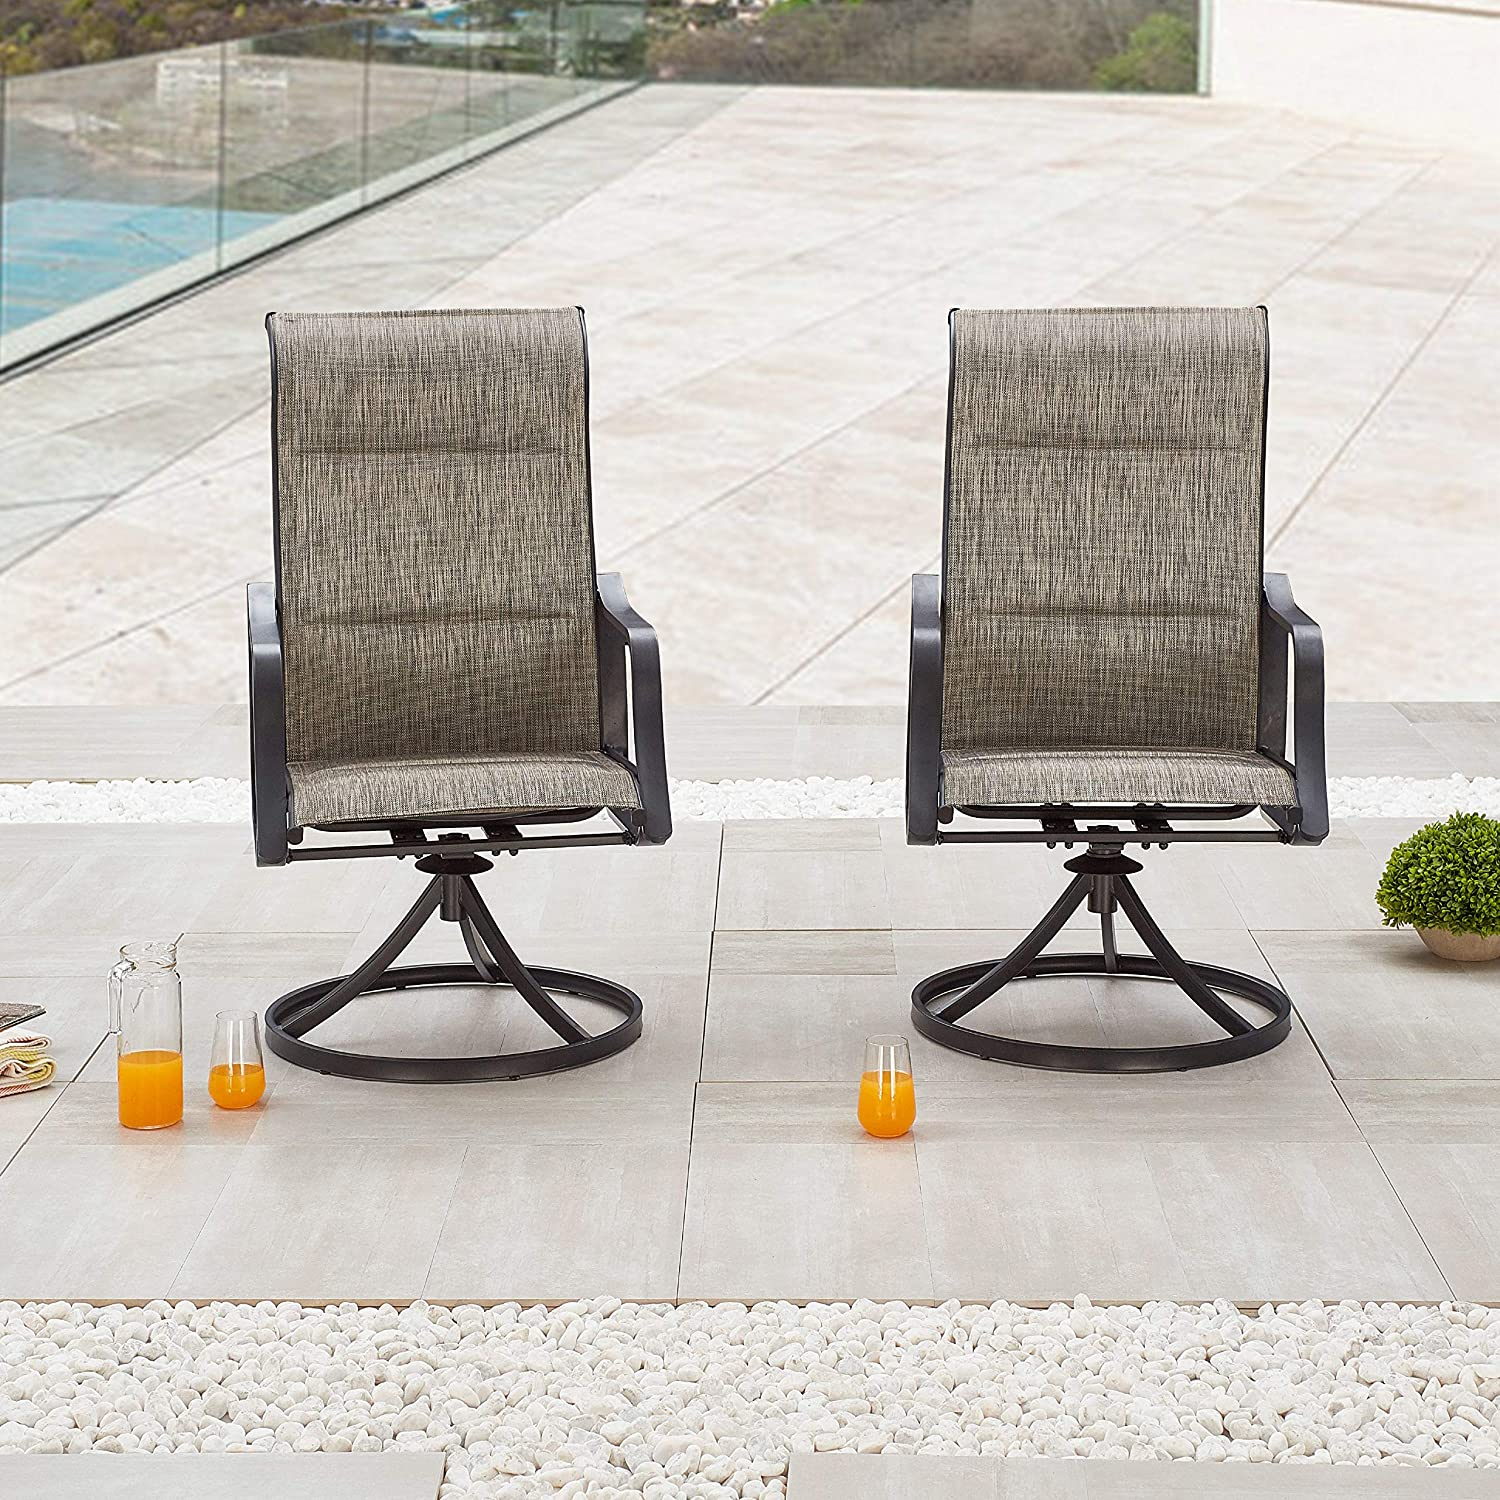 LOKATSE HOME Outdoor Patio Swivel Chair Set Sling(Set of 2), 2, Grey : Garden & Outdoor